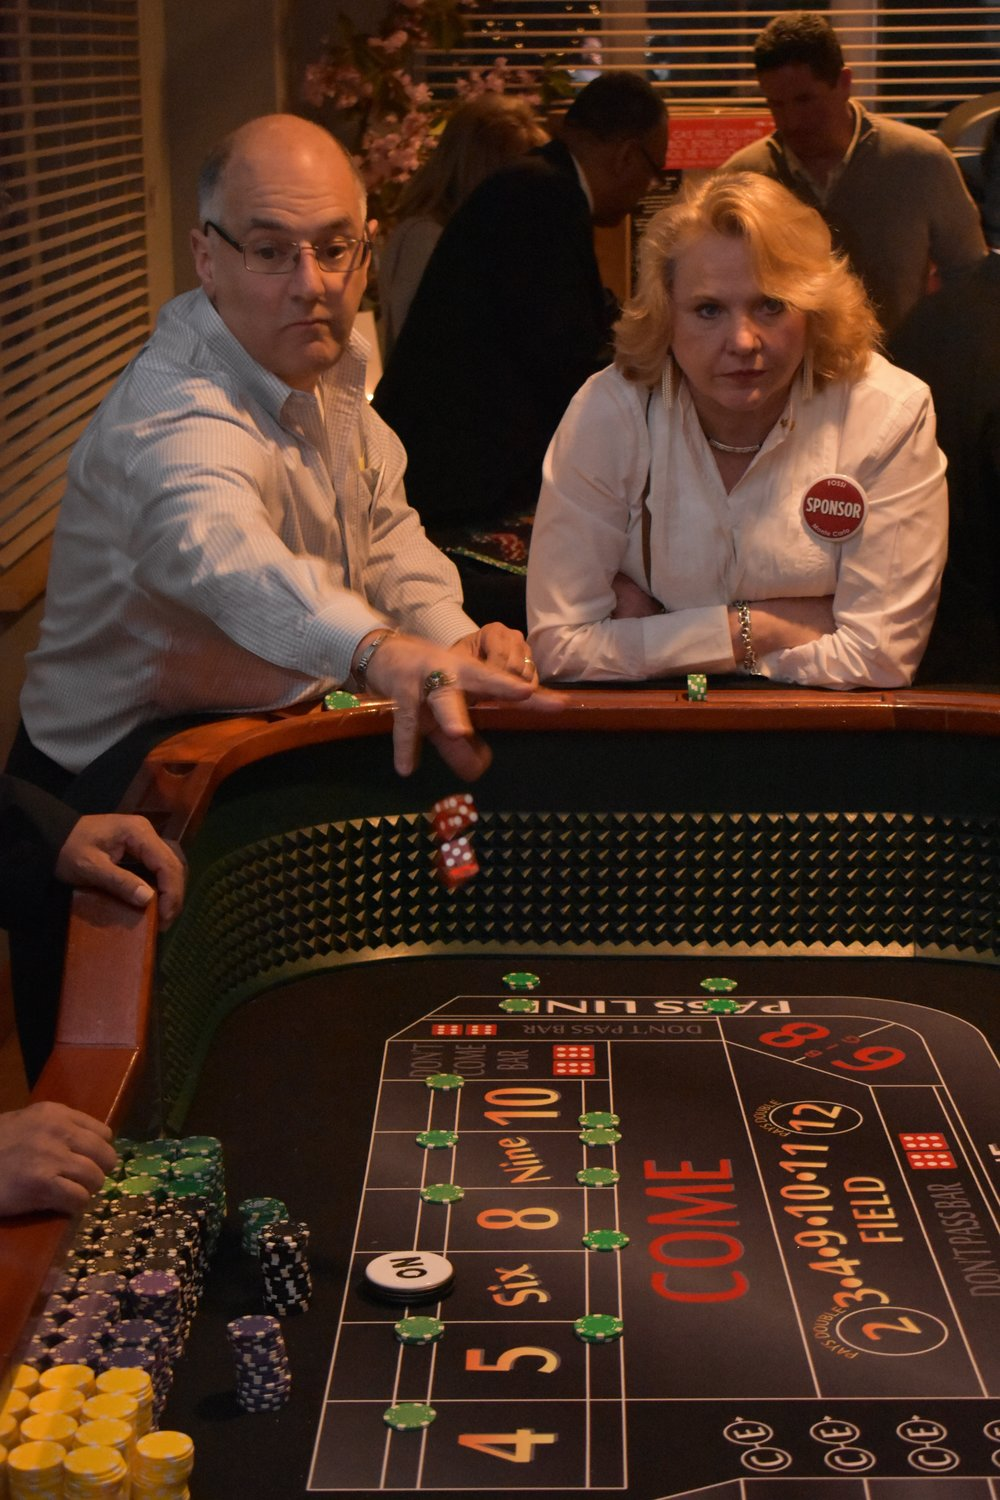 Dan Navarino, left, tested his luck at a craps table as Lisa Spatz looked on.